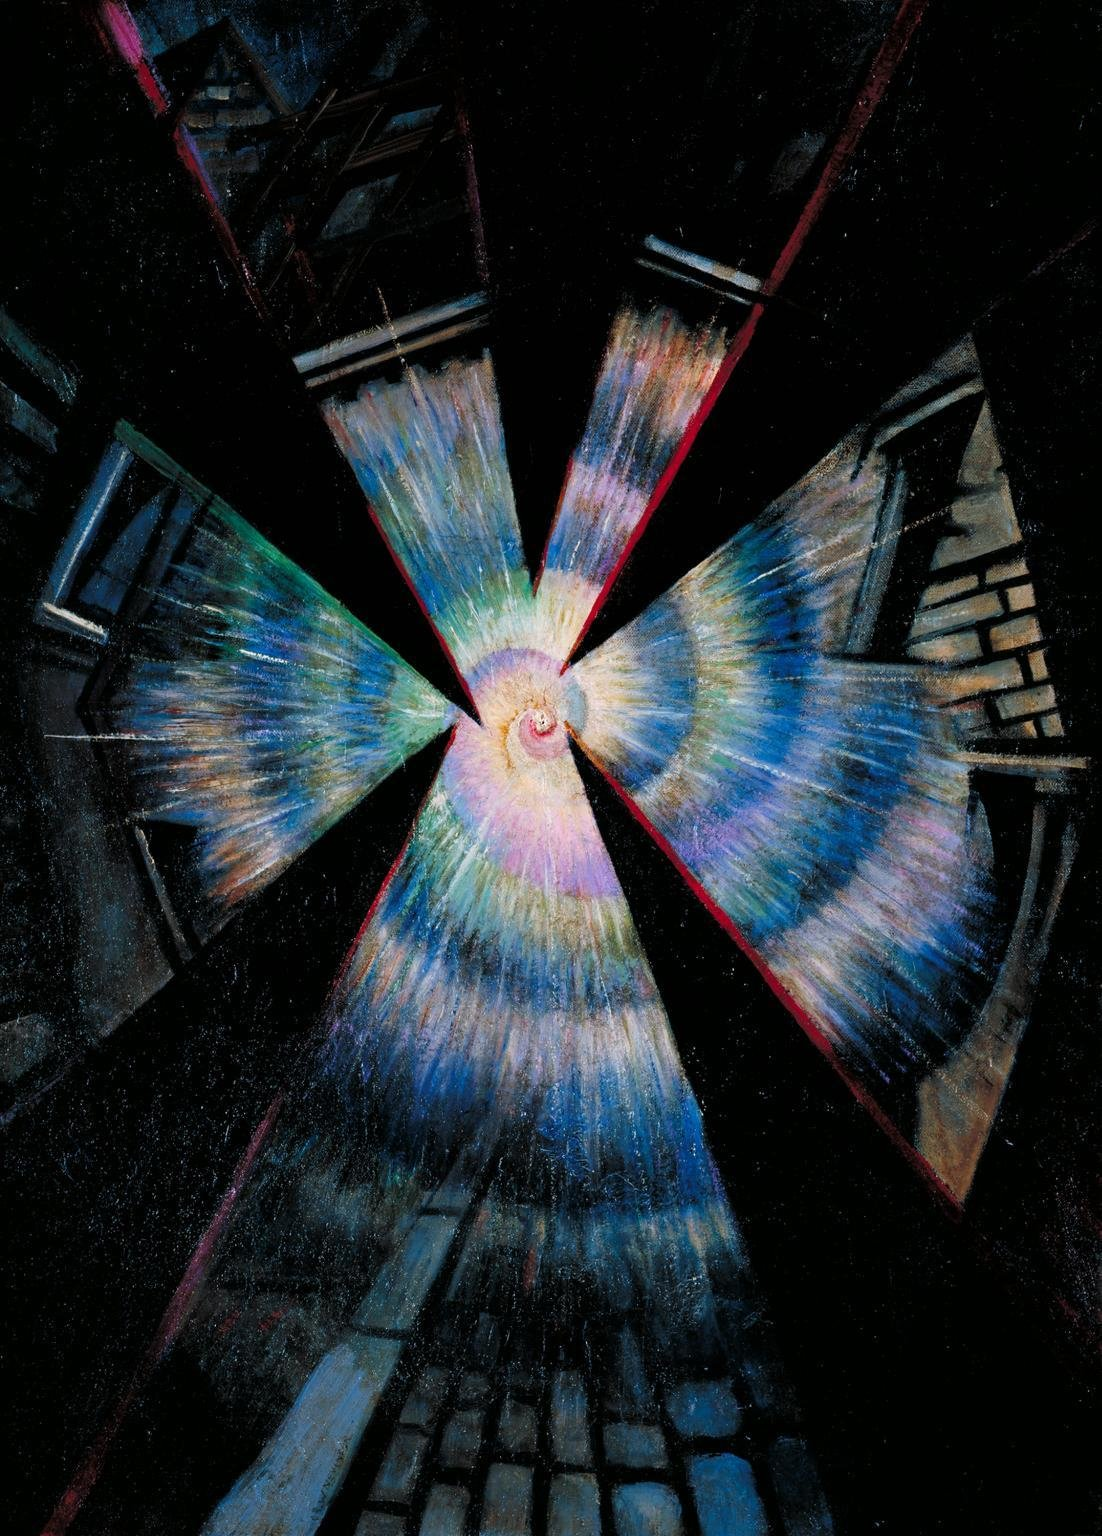 Bursting Shell, 1917, C.R.W. Nevinson, Tate, CC BY-NC-ND